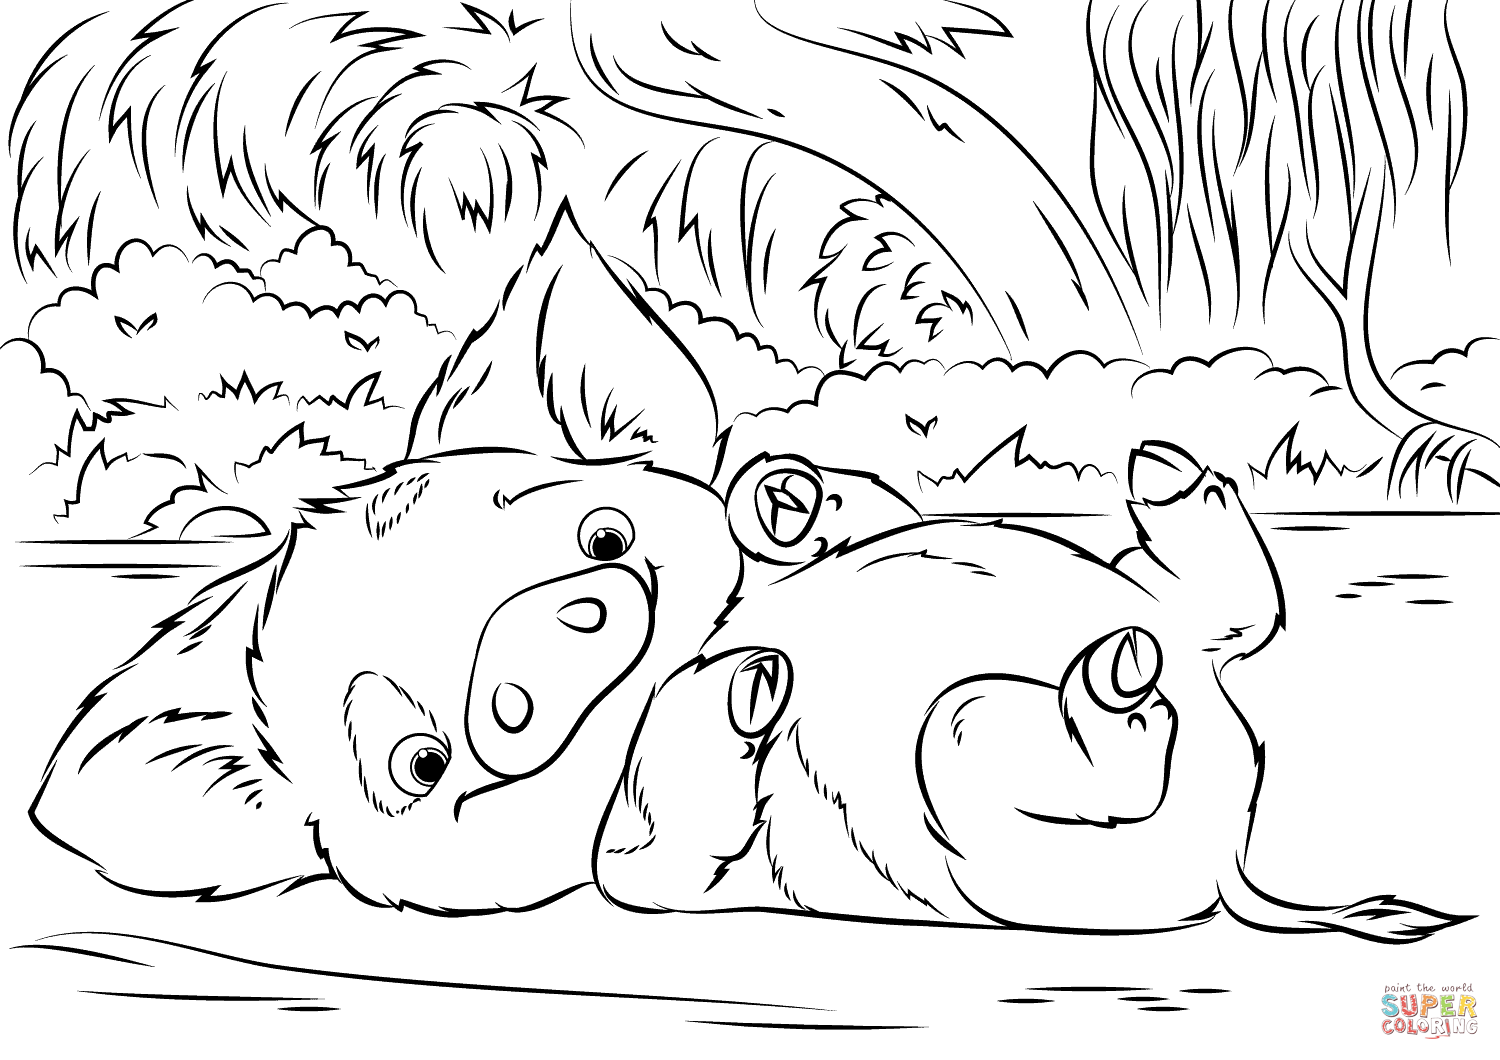 Incredible Moana coloring page to print and color for free : little Pig Pua playing